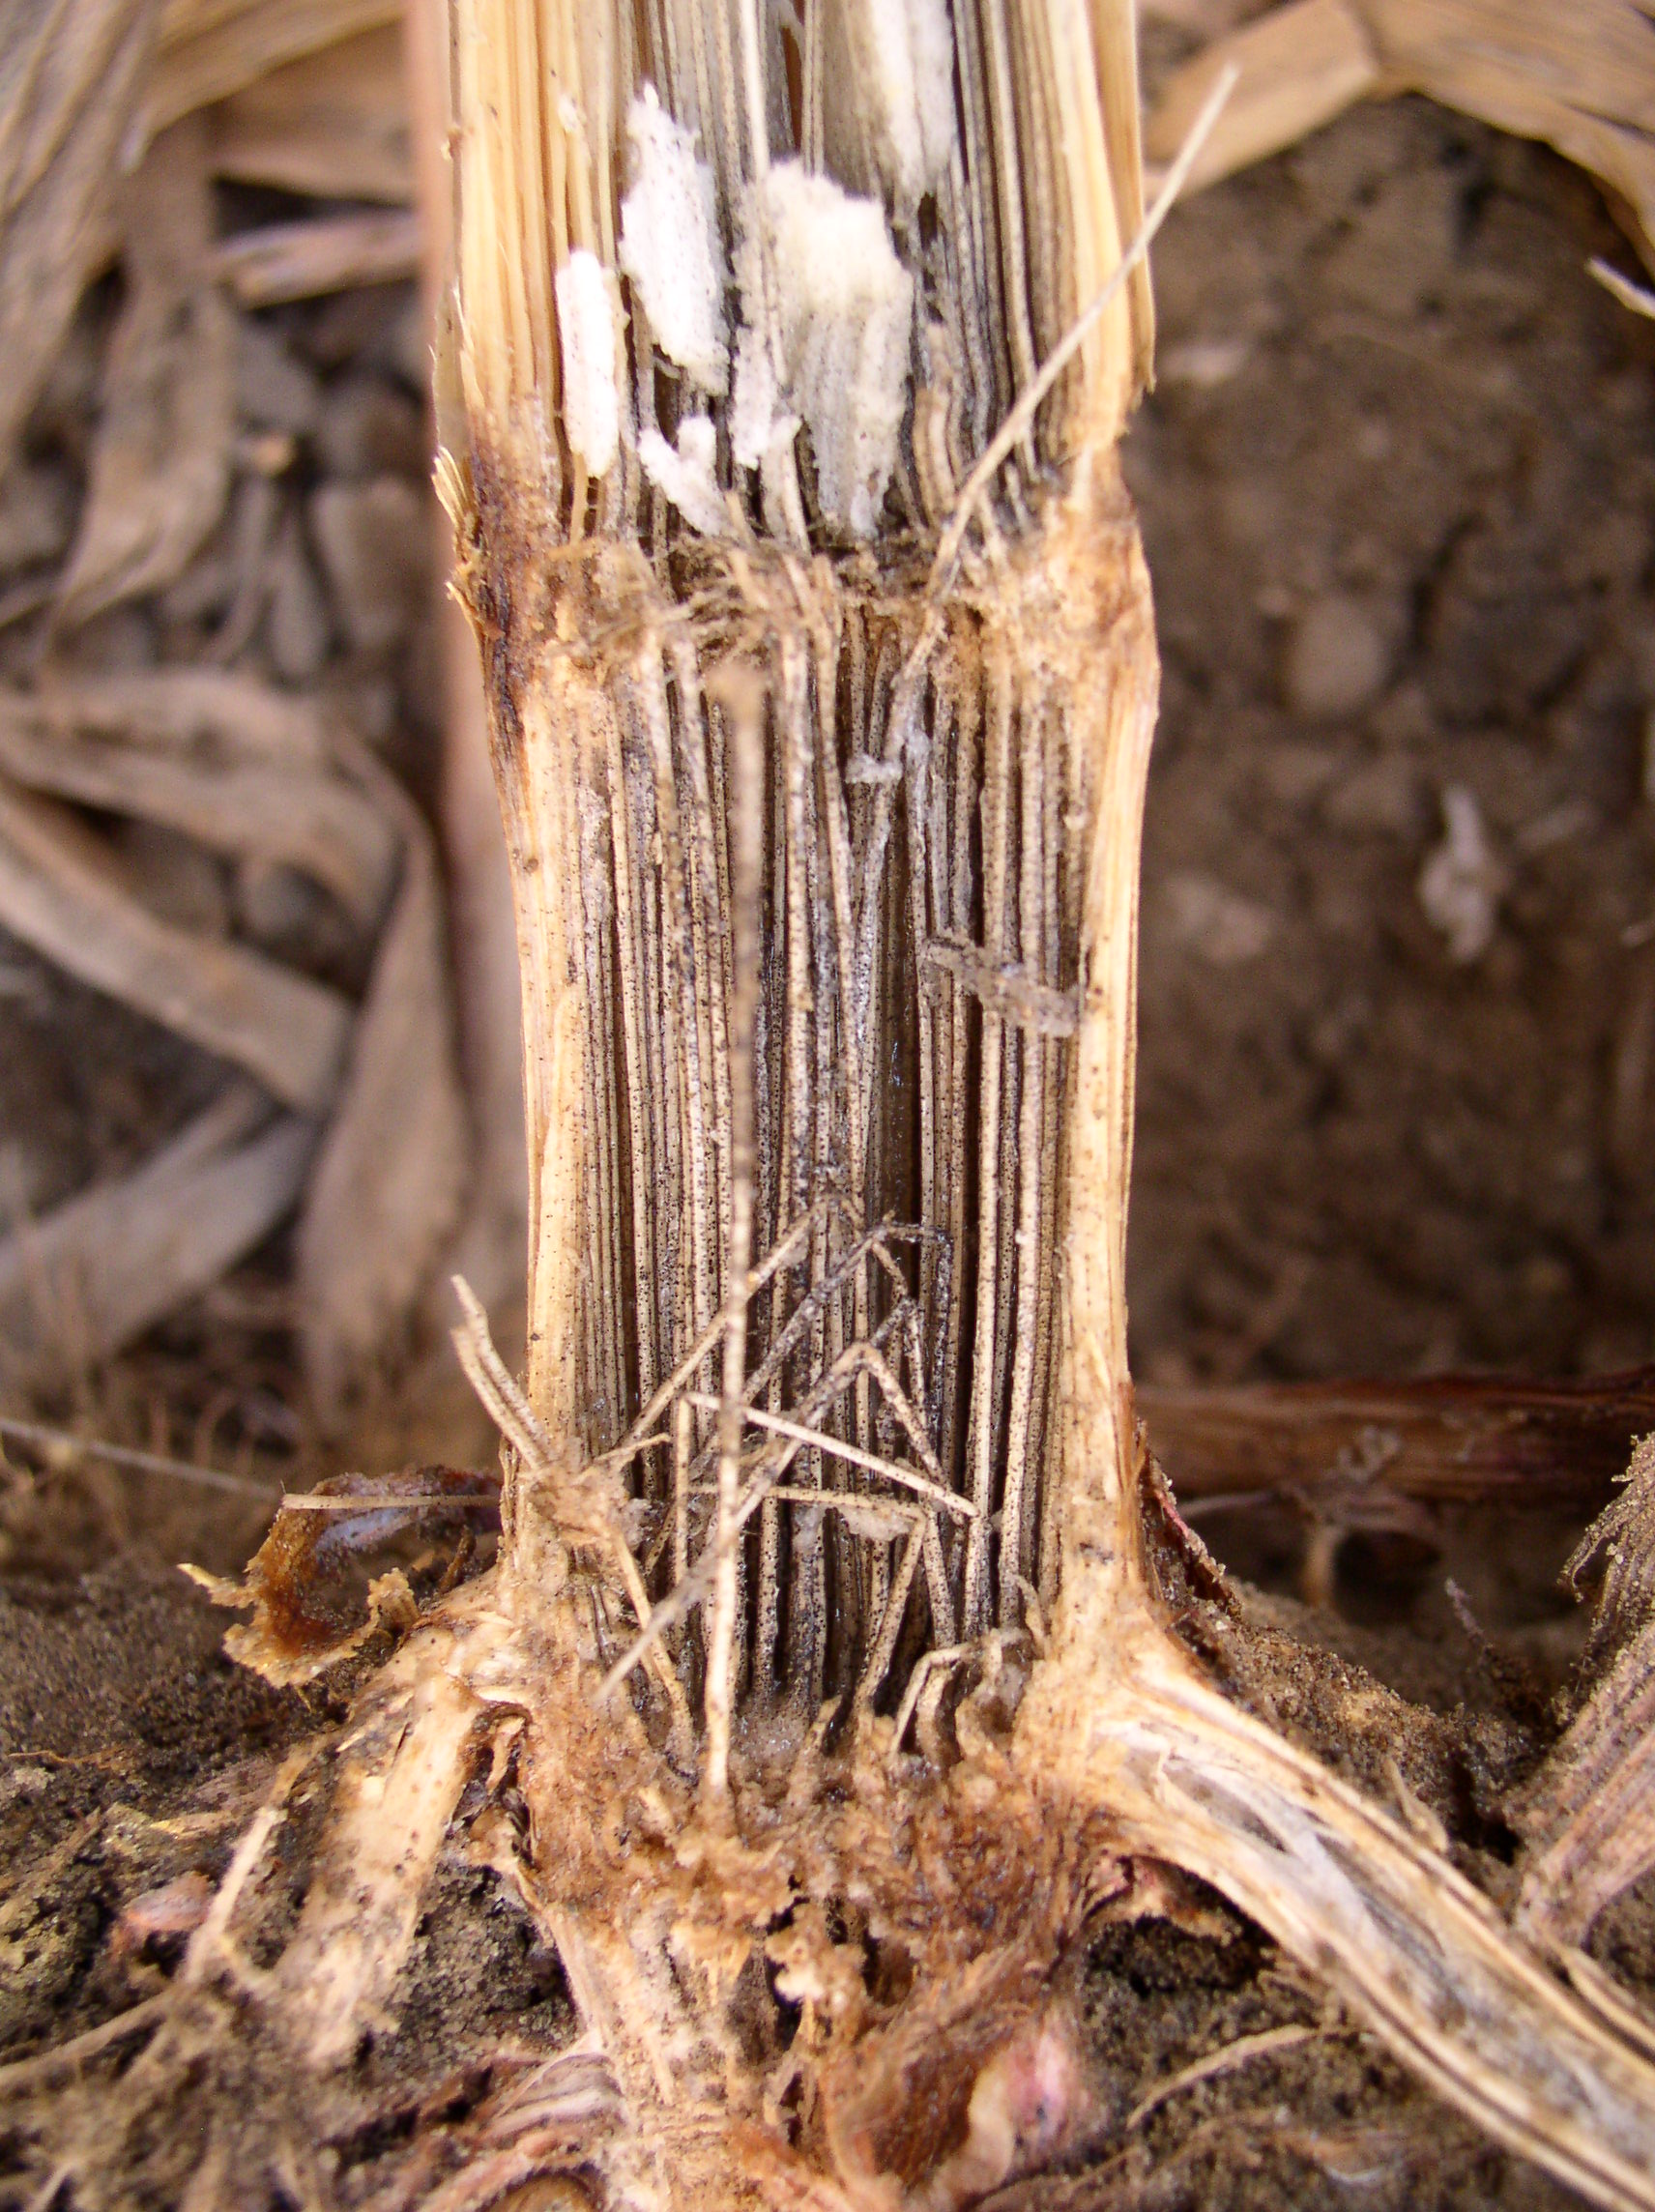 Charcoal rot causes disintegration of pith tissue as well as formation of microsclerotia.